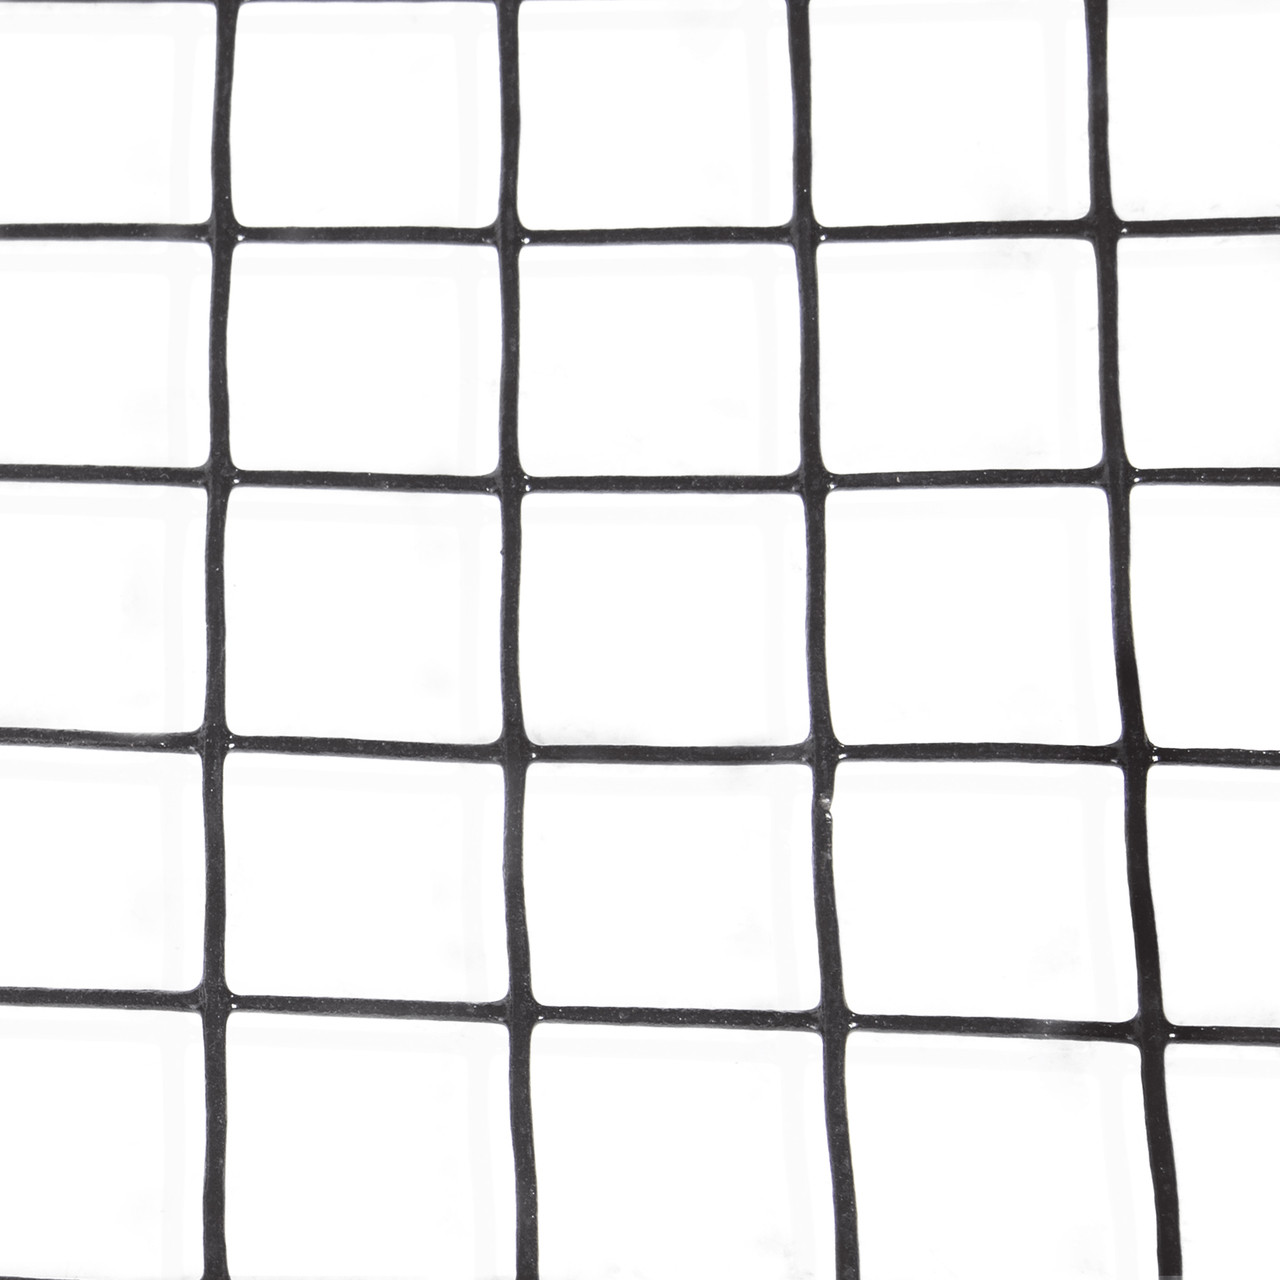 16 Gauge Black Vinyl Coated Welded Wire Mesh Size 1 5 Inch By 1 5 Inch